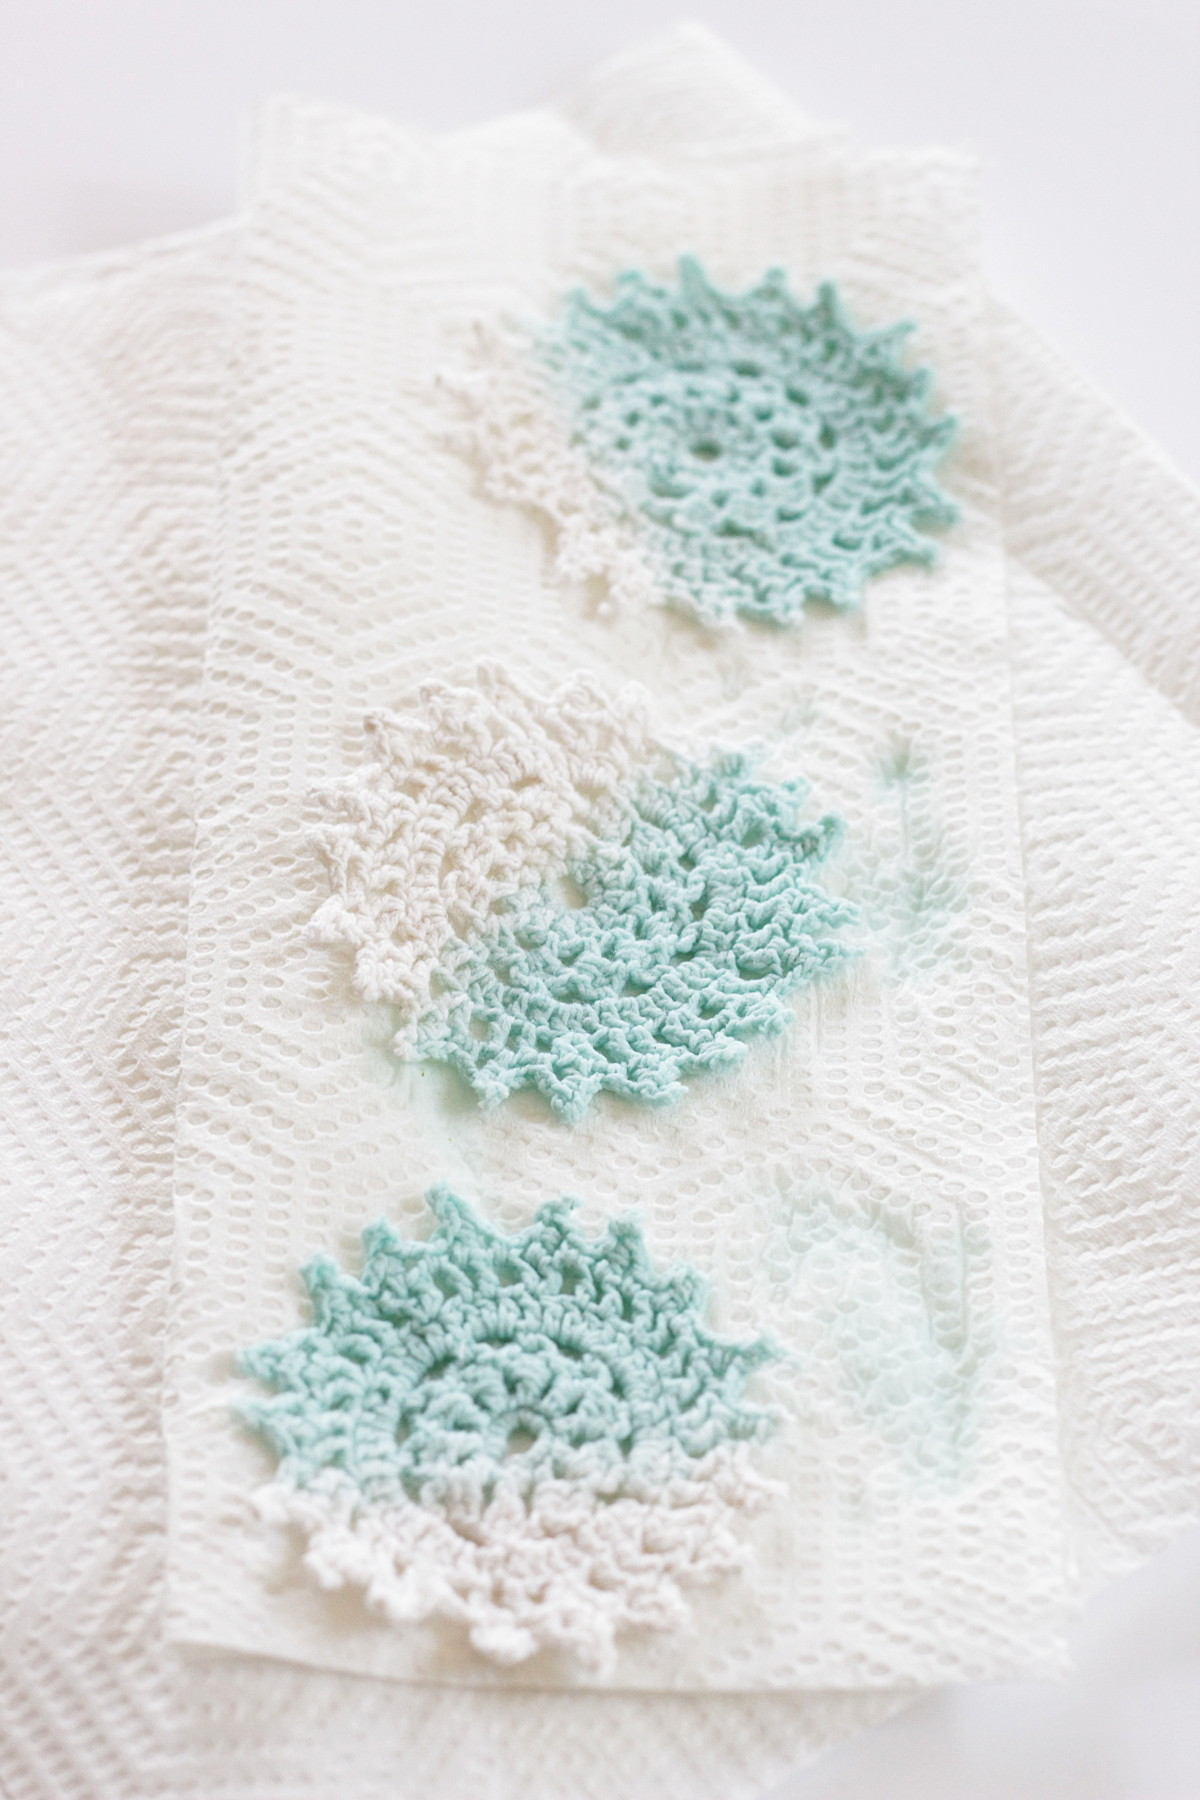 Easy Dip Dyed Doilies How To Make A Doily Home DIY